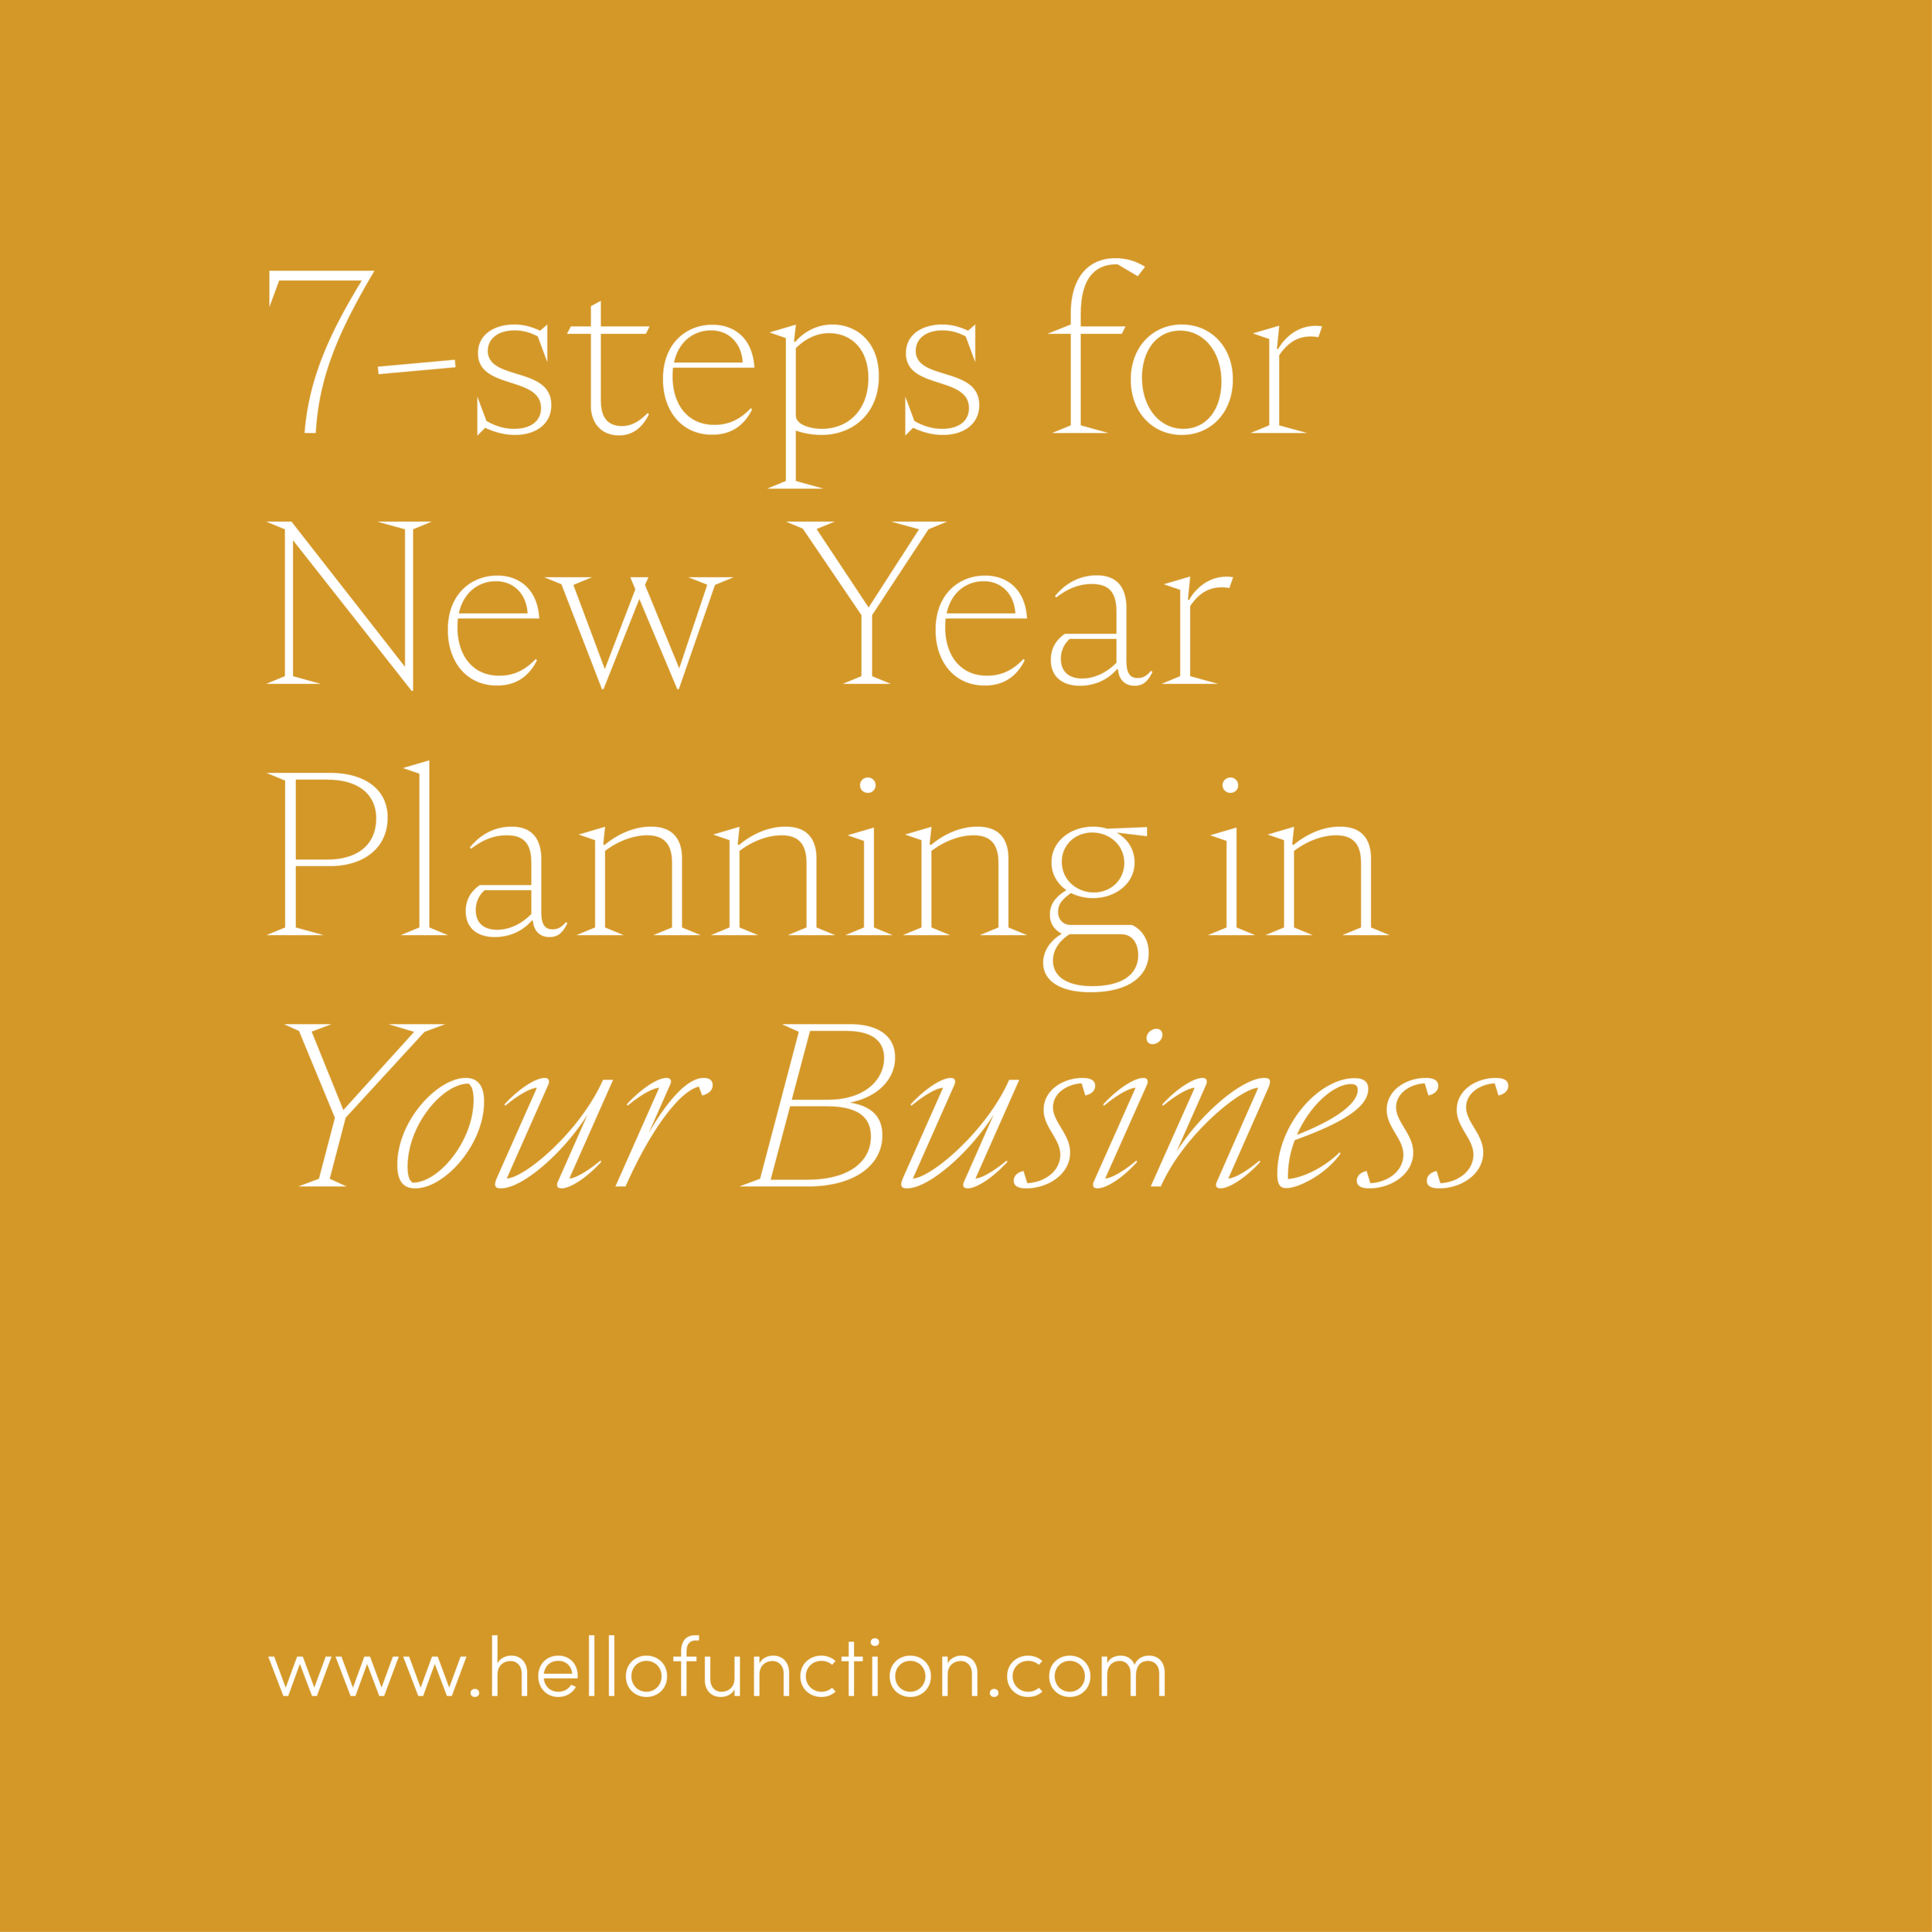 3 principles intended for composing a good internet business plan: